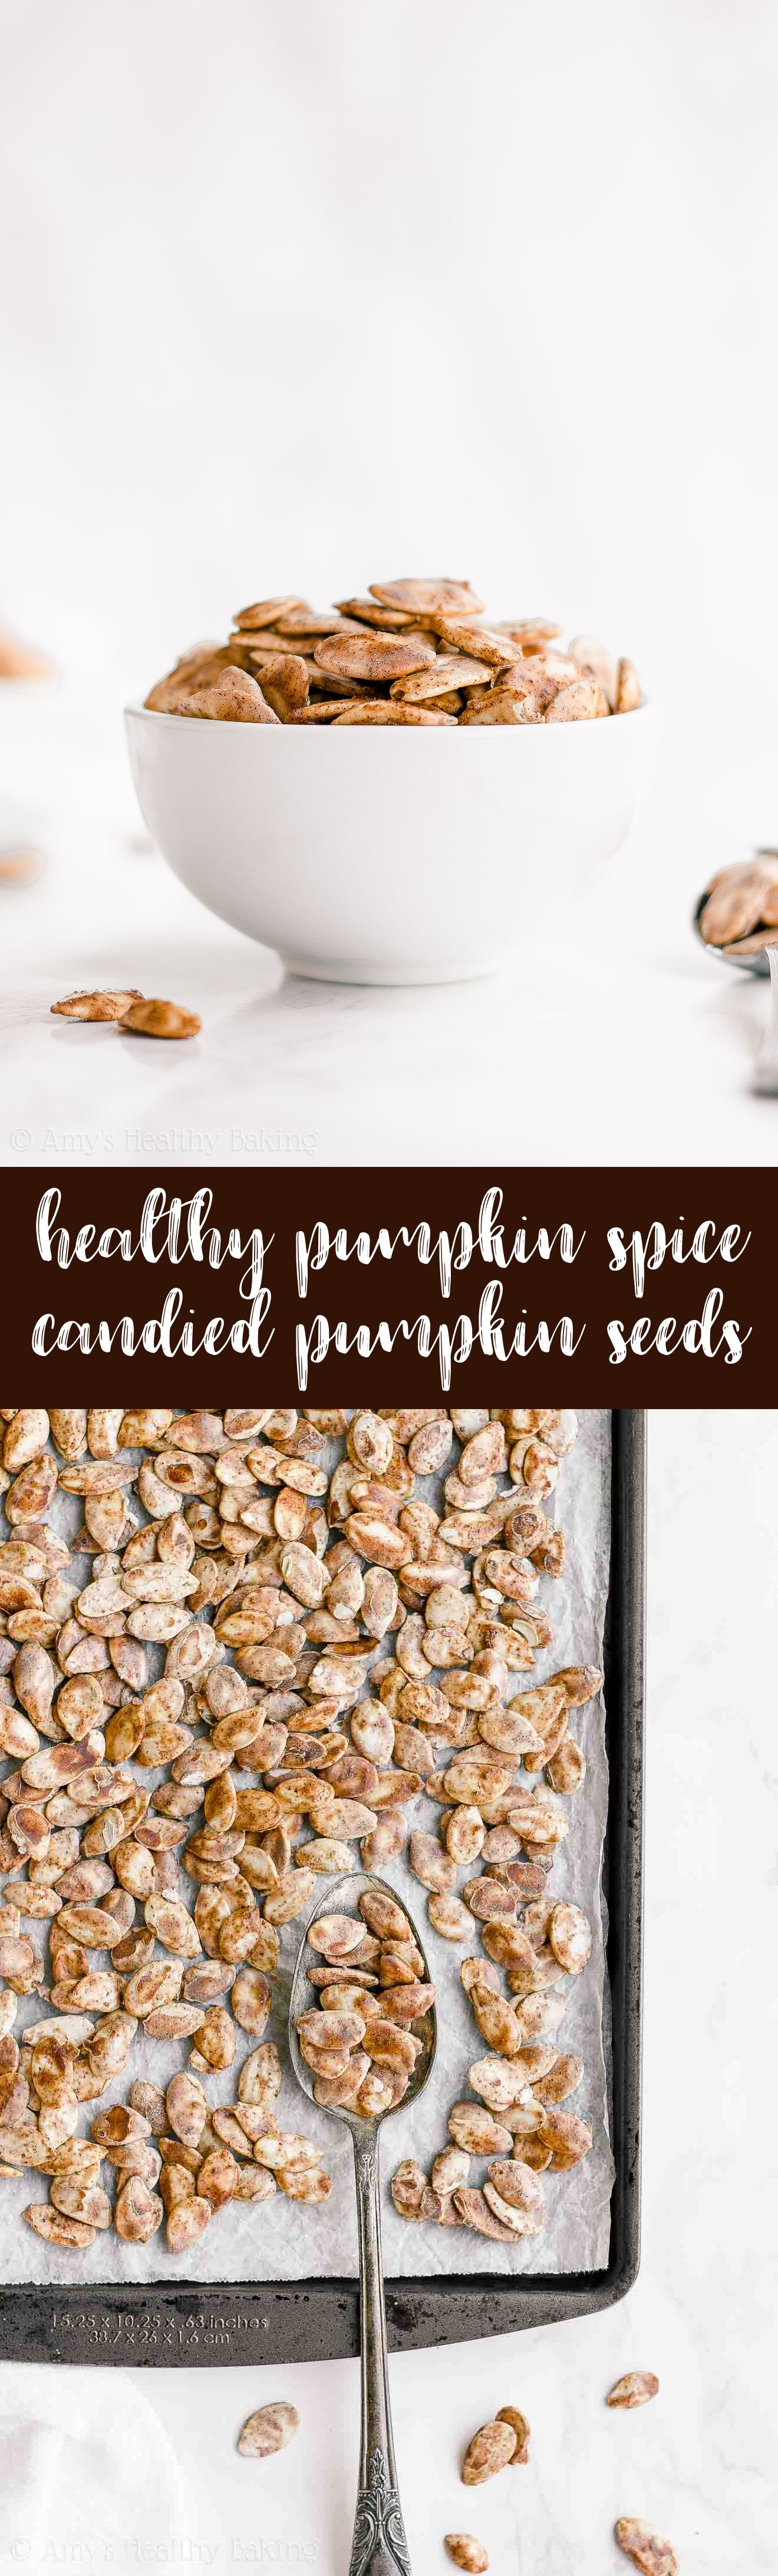 Best Easy Healthy Sugar Free Pumpkin Spice Candied Pumpkin Seeds